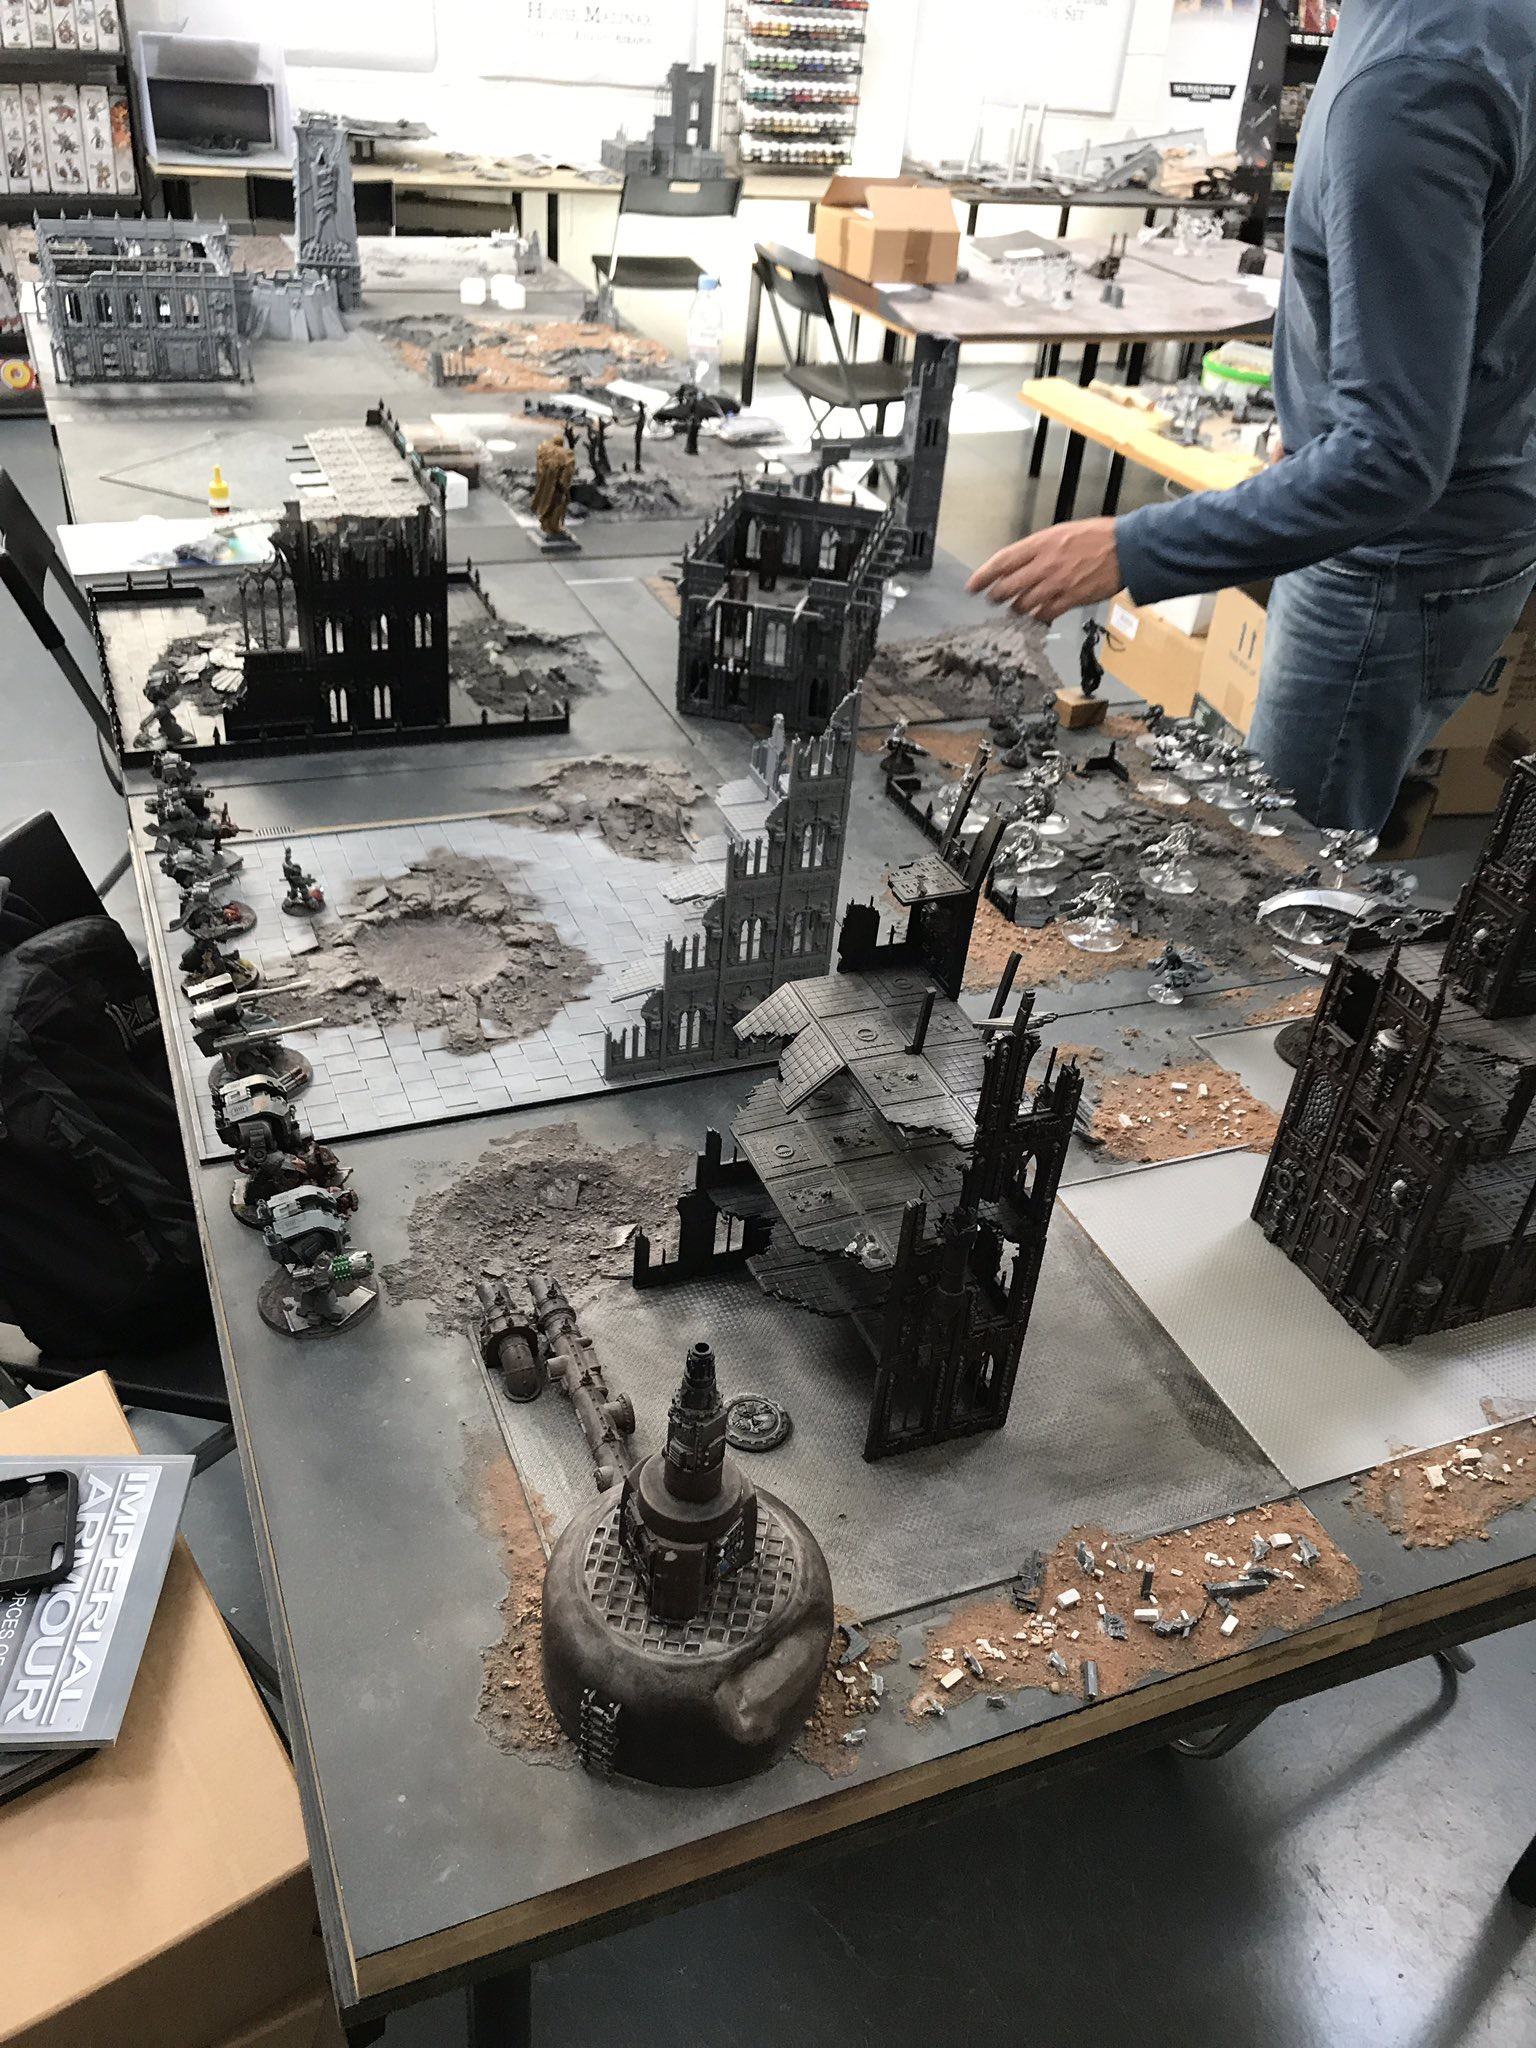 Serting up the chrome force as Dave started hiding all his Dreadnoughts. You can just make out his first one deployed in the ruin at the far left